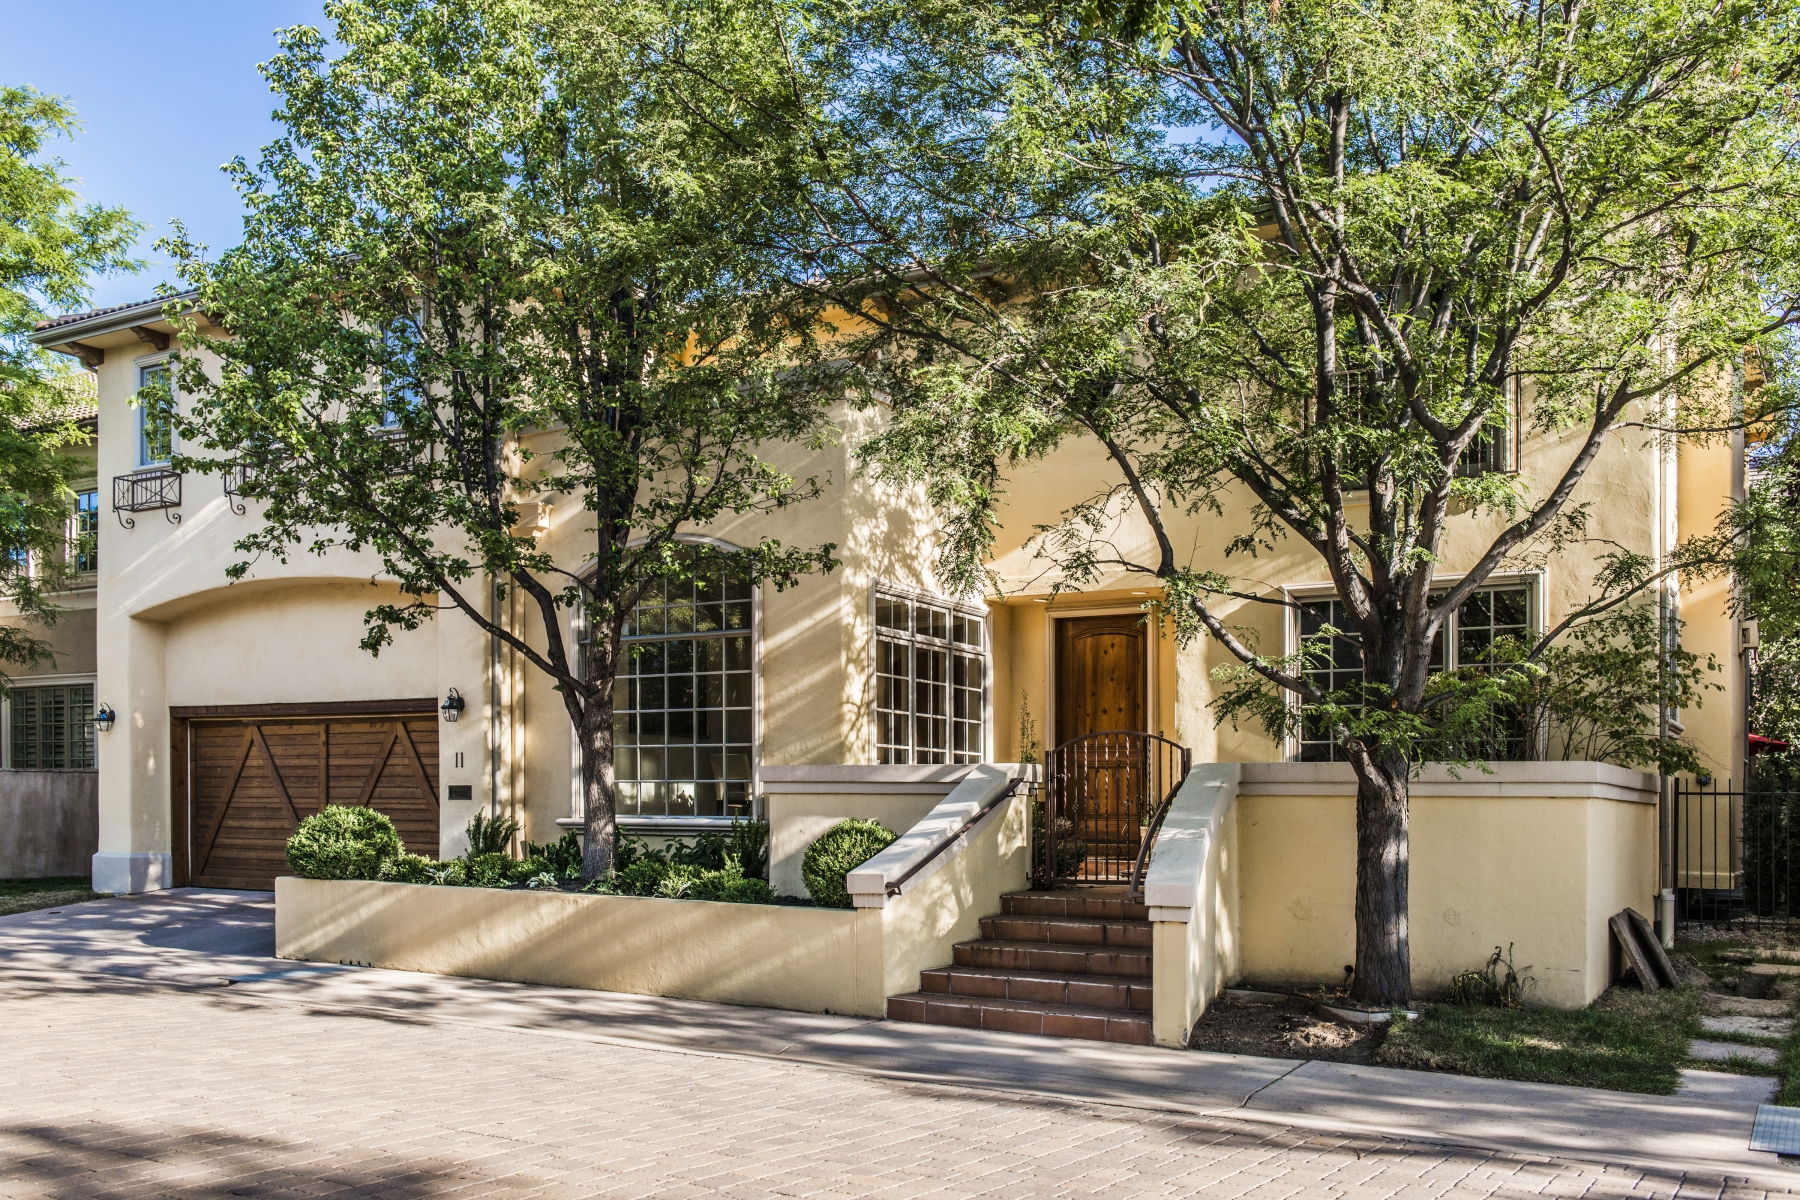 Single Family Home for Sale at Elegant and Sophisticated Mediterranean Style Home in Cherry Creek's Belcourt 100 South University #11 Cherry Creek, Denver, Colorado 80209 United States